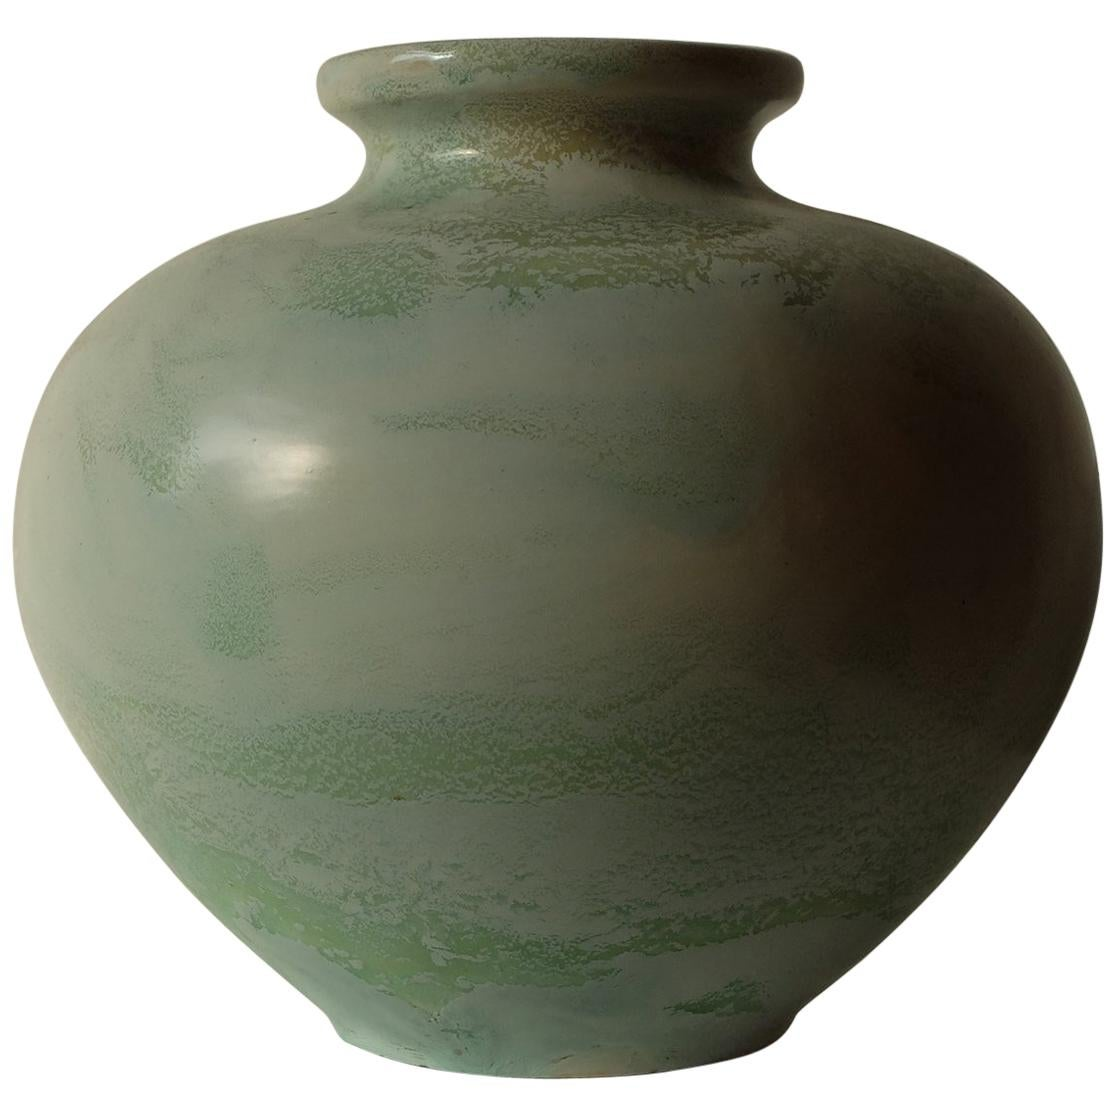 Guido Andlovitz Lavenia, Elegant Vase in Glazed Ceramic, 1930s